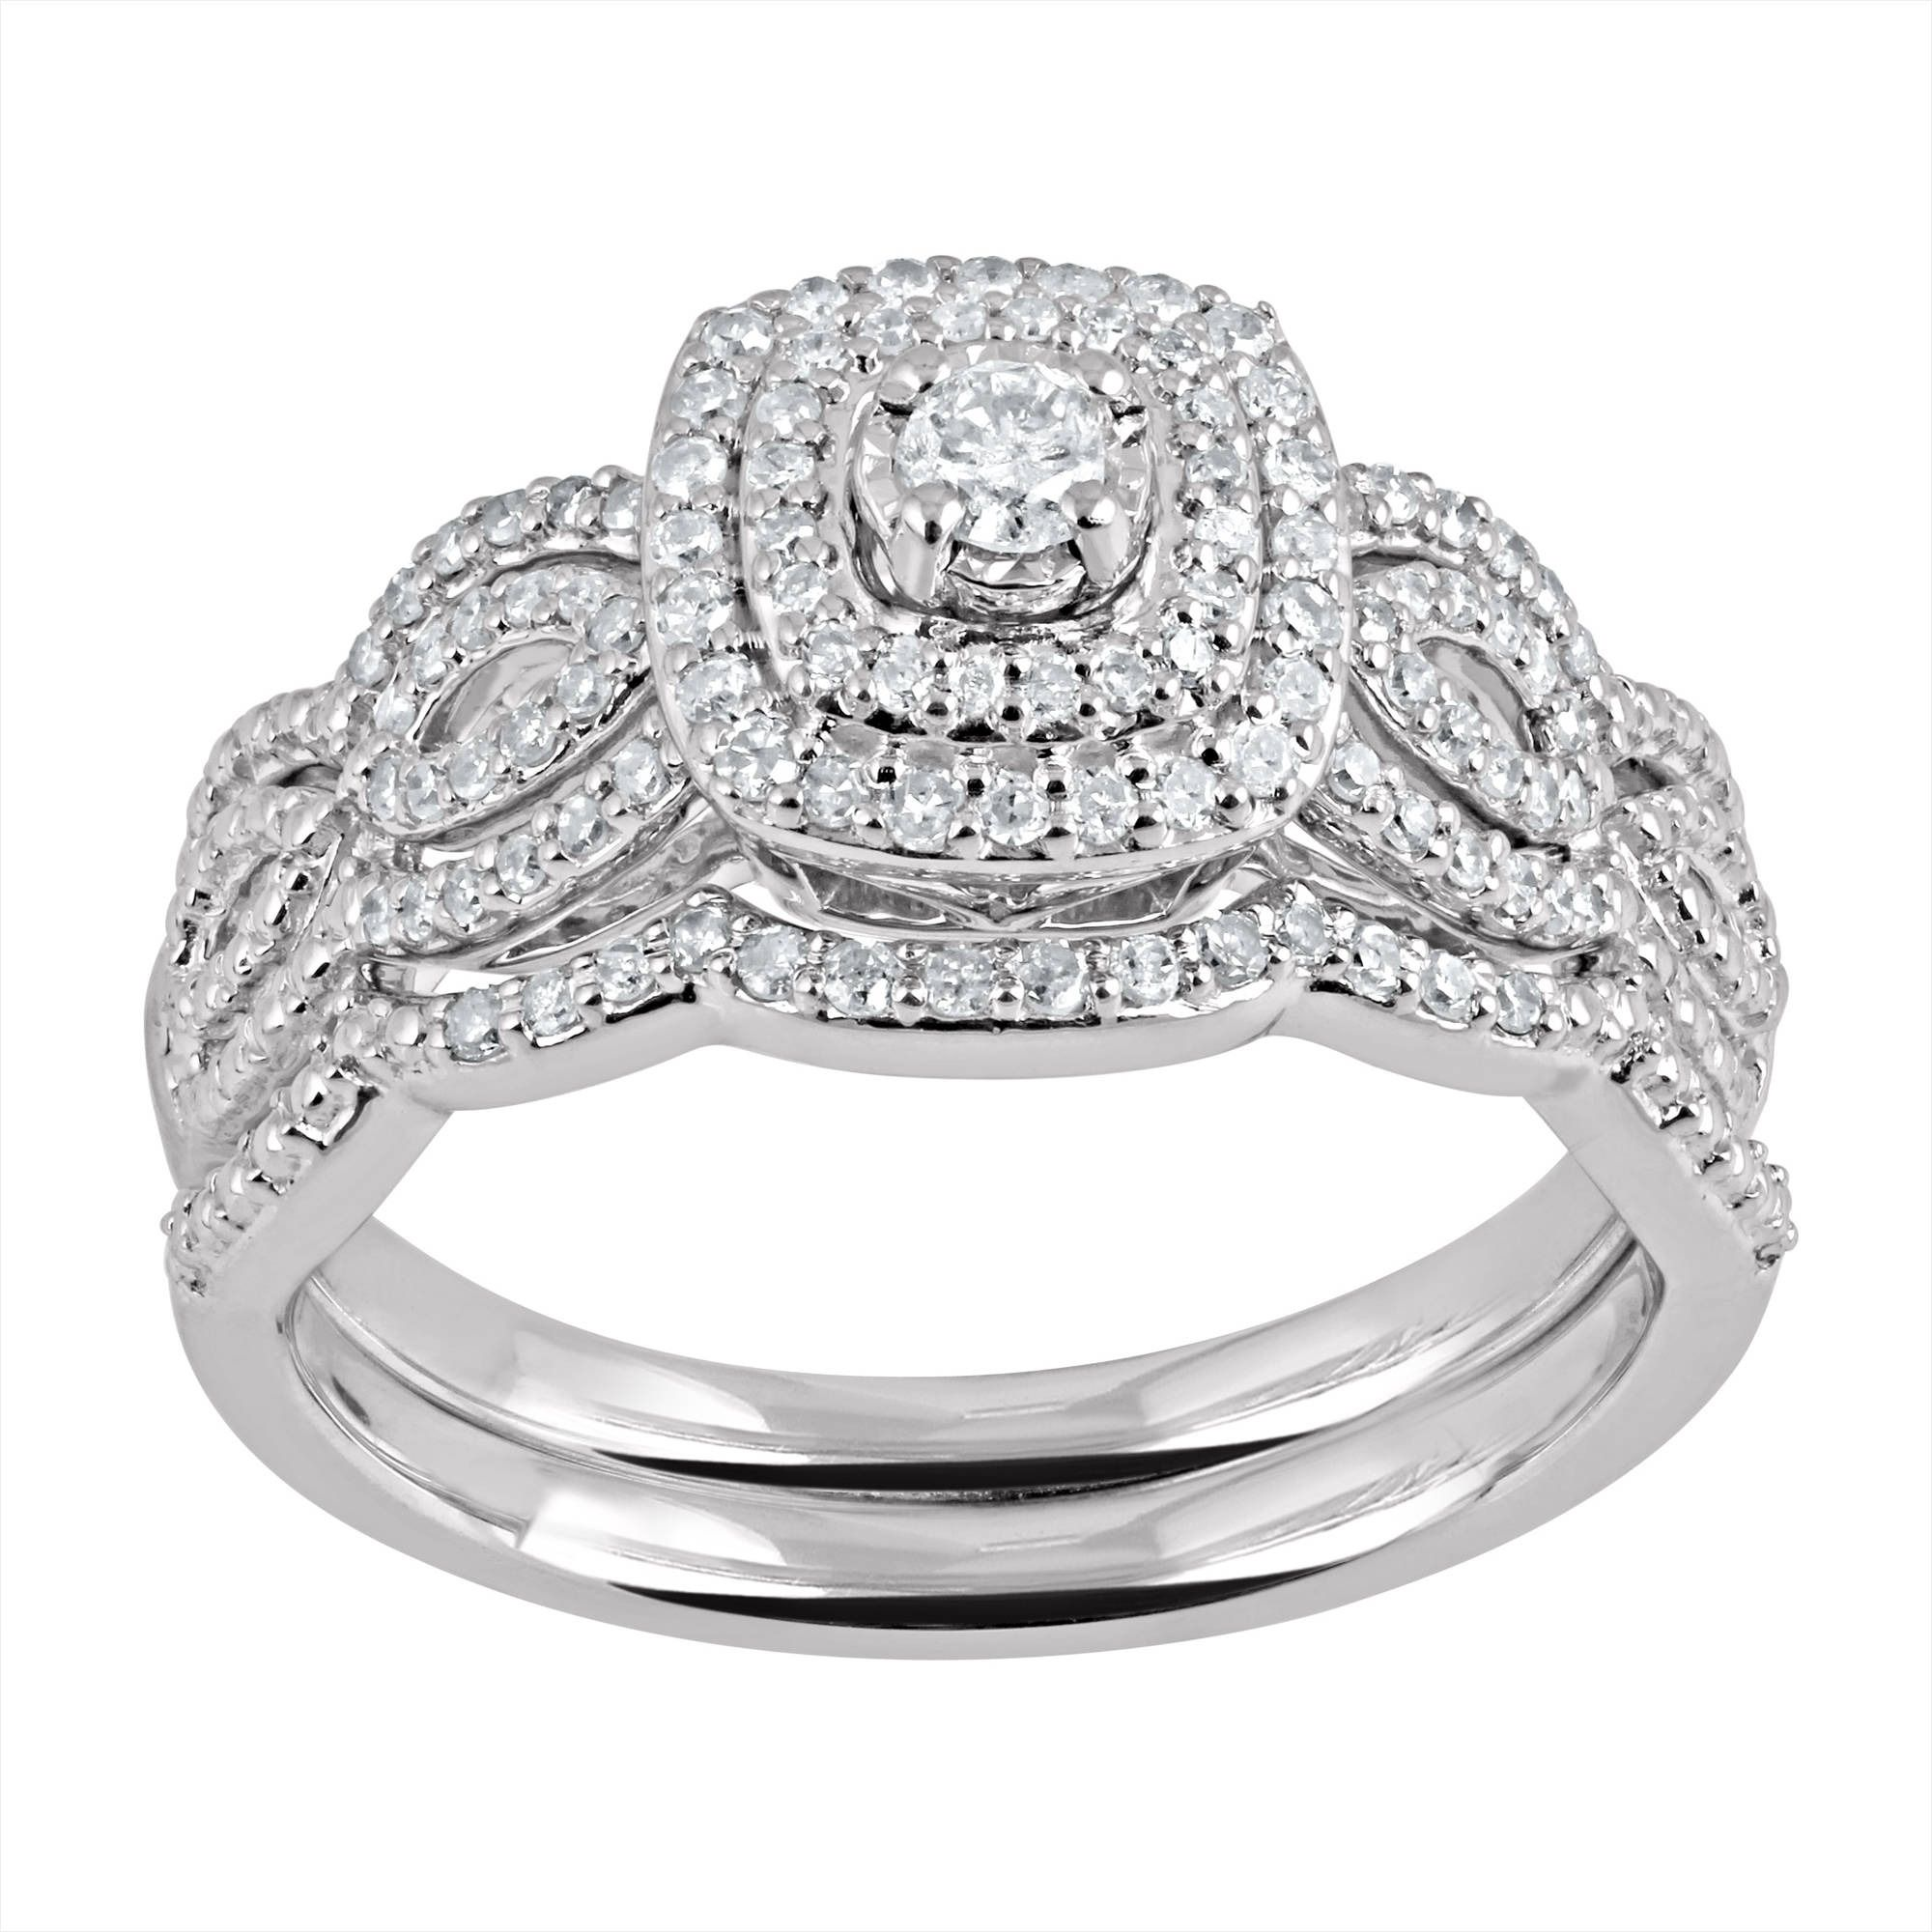 It is just a picture of 48 Best Of Walmart Wedding Bands for Her Li48 Walmart wedding